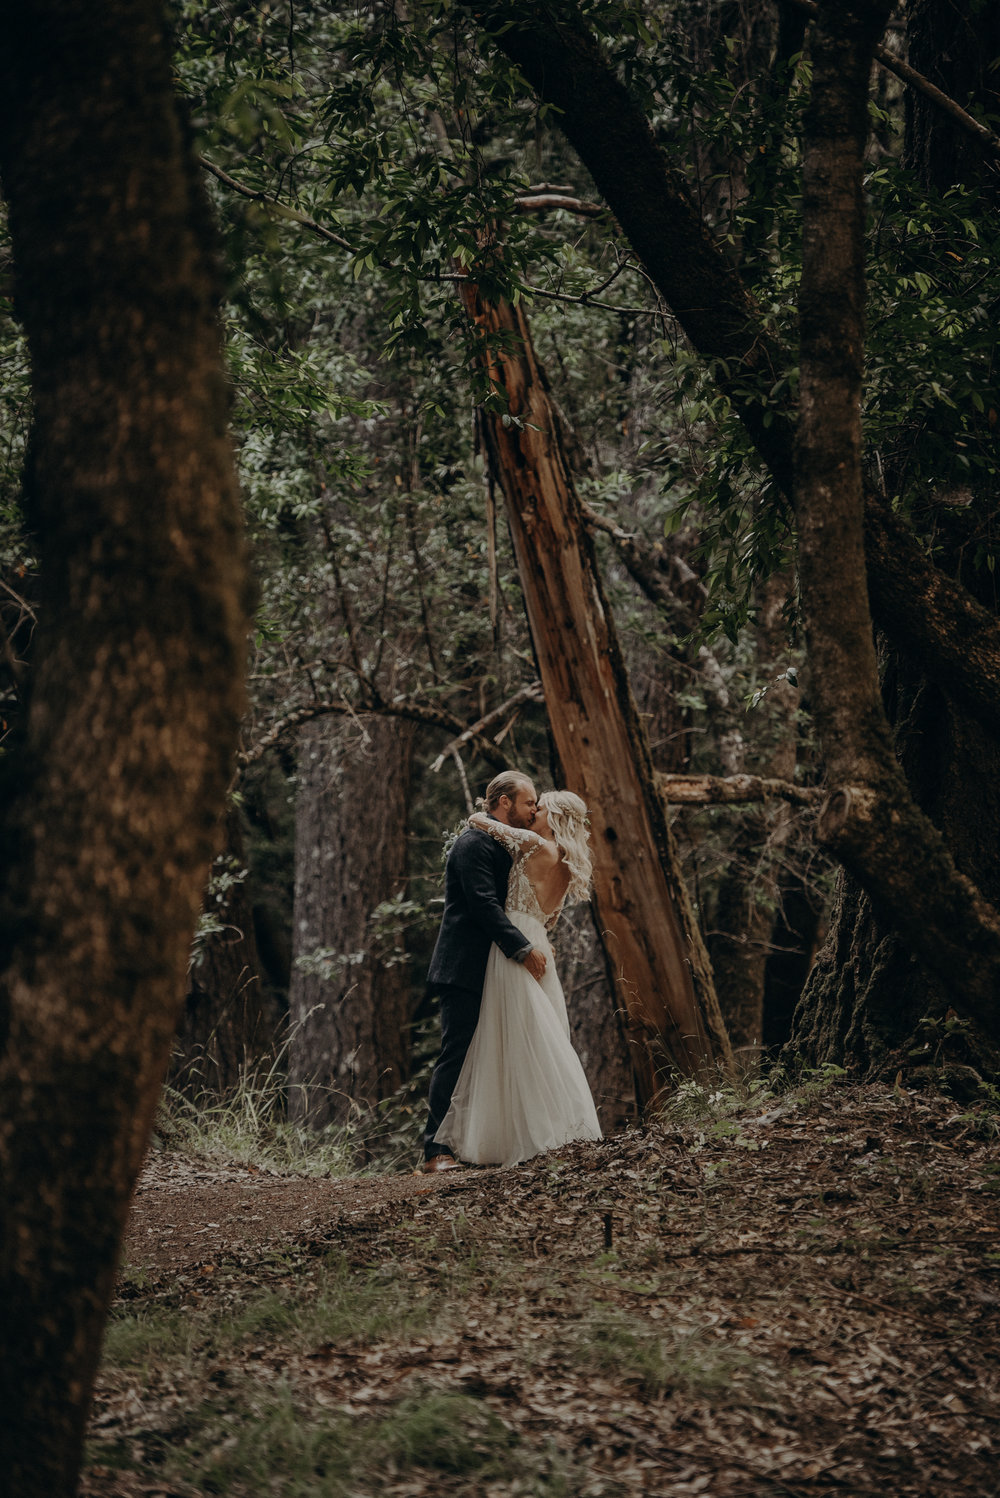 IsaiahAndTaylor.com - California Destination Elopement, Lake Leonard Reserve Wedding, Ukiah-121.jpg